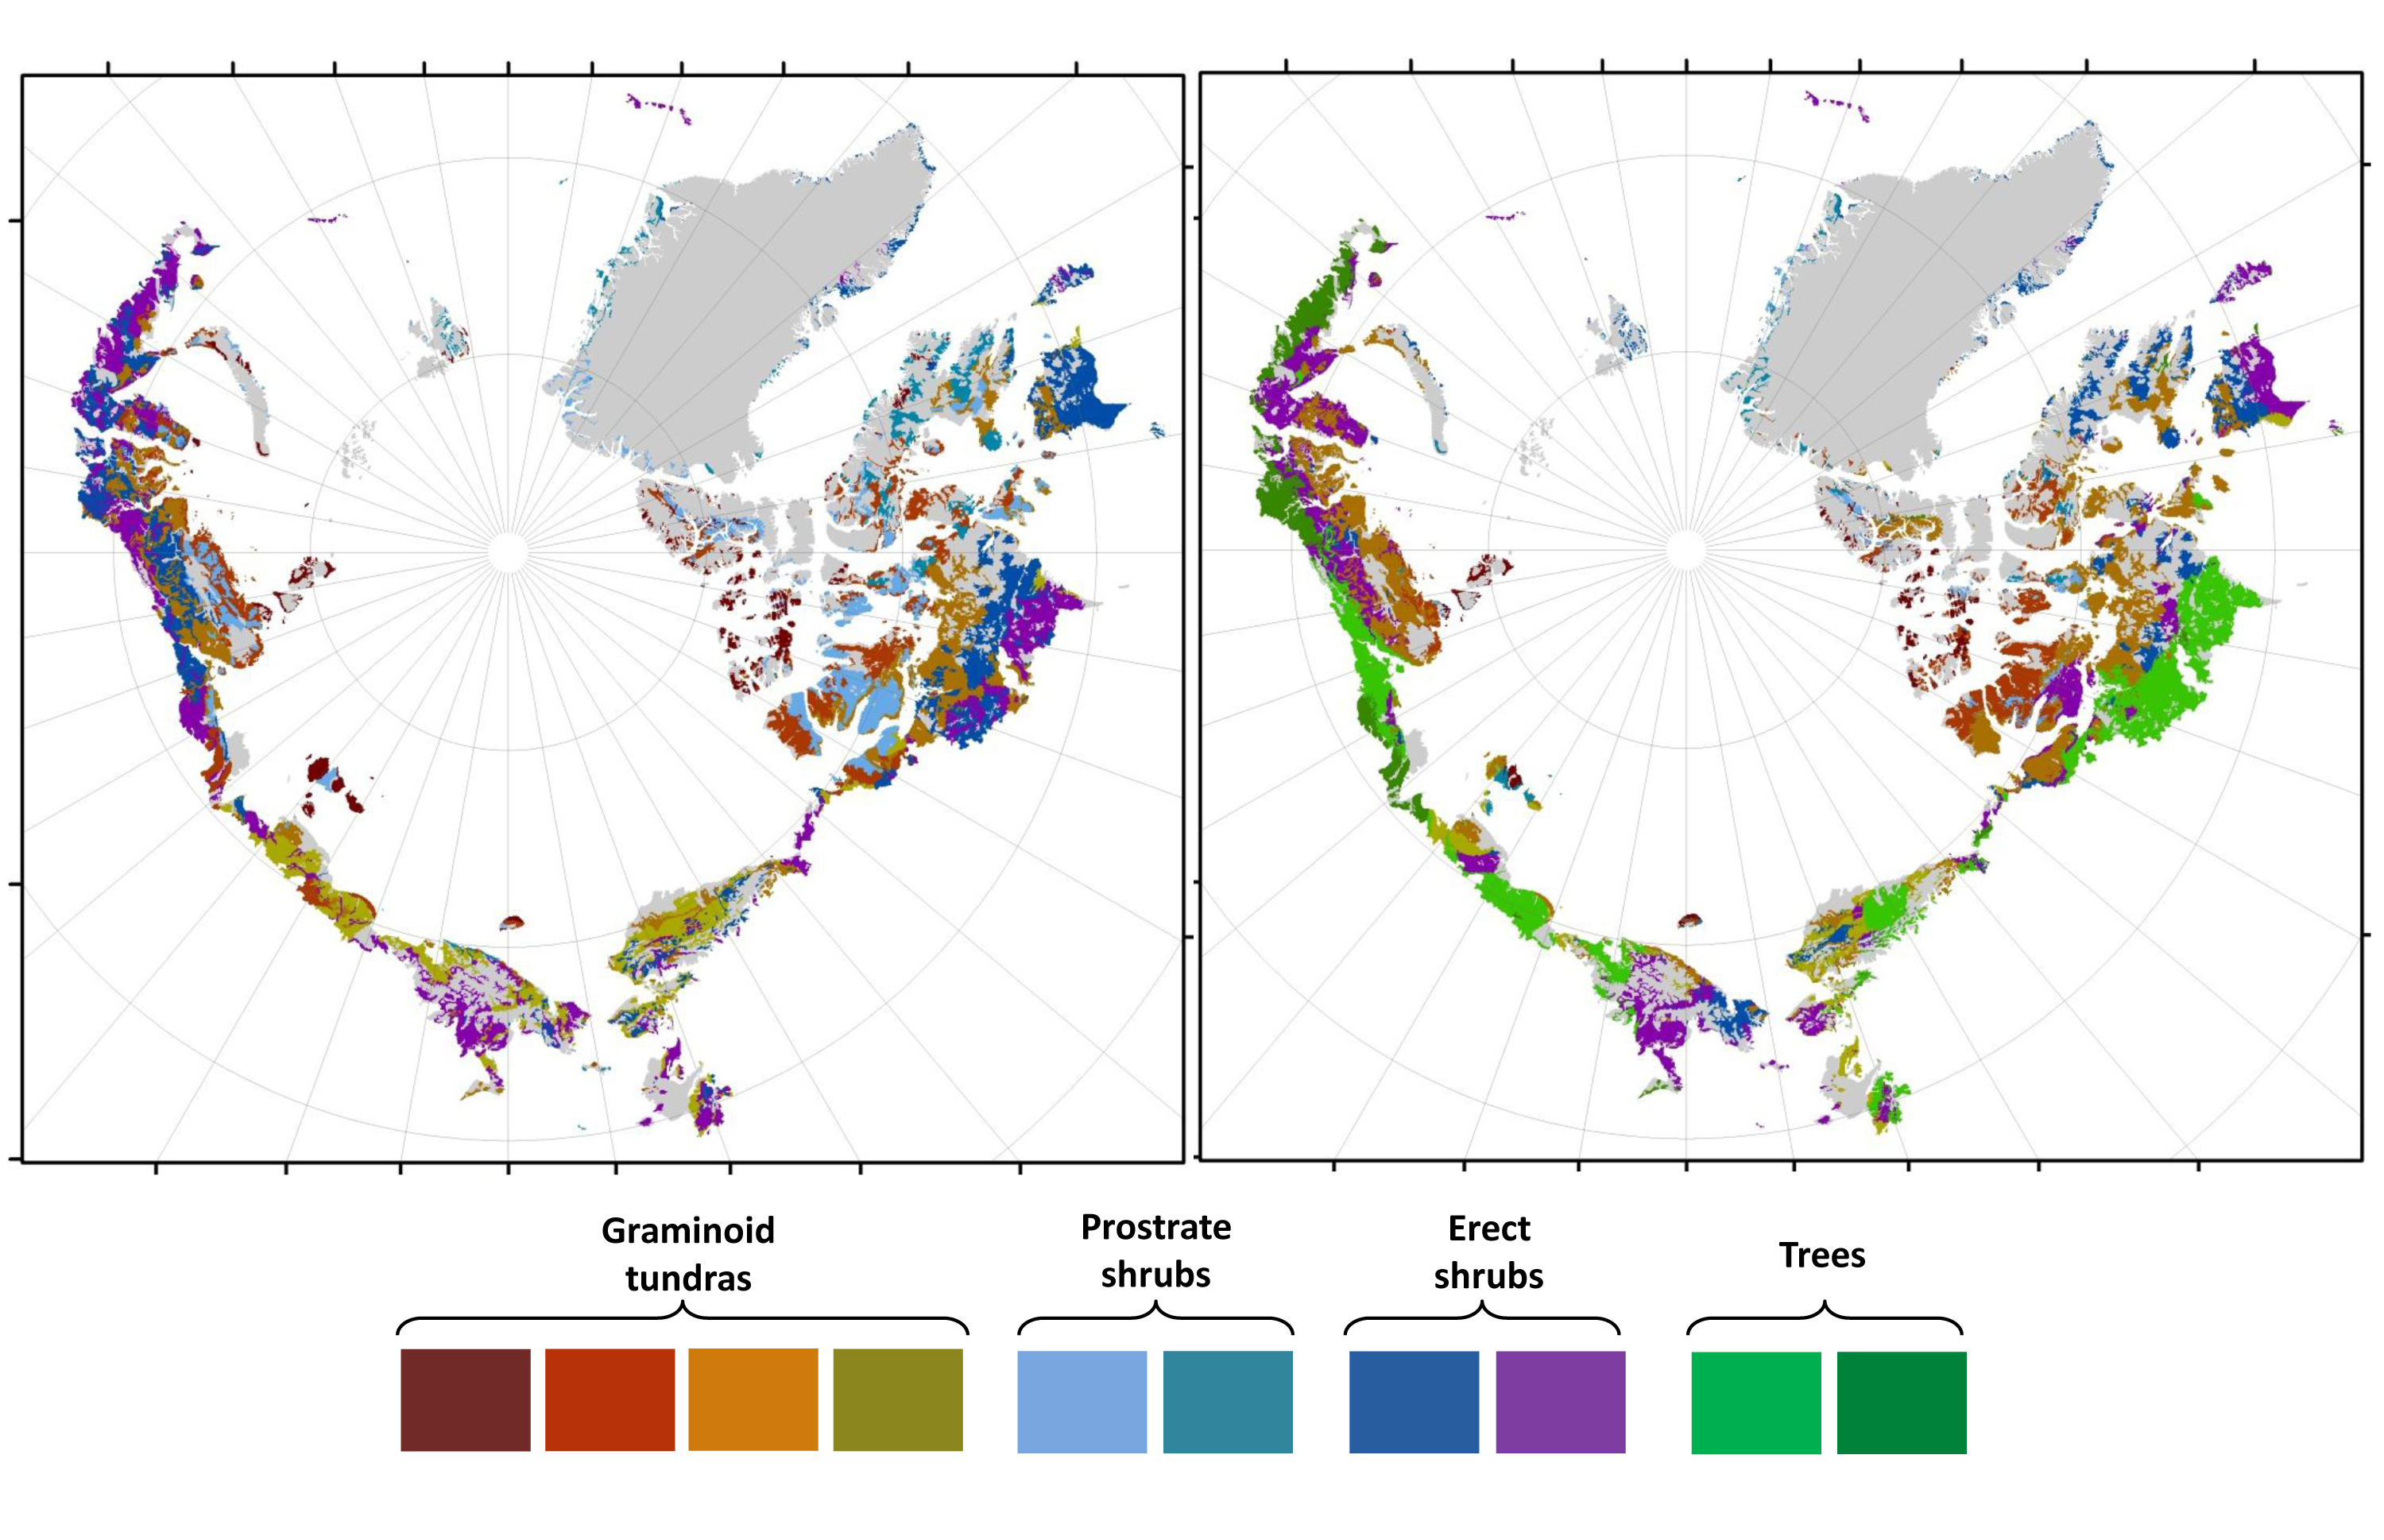 Greener Arctic Forecast: Observed distribution (left) and predicted distribution of vegetation under a climate warming scenario for the 2050s (right). Credit: American Museum of Natural History